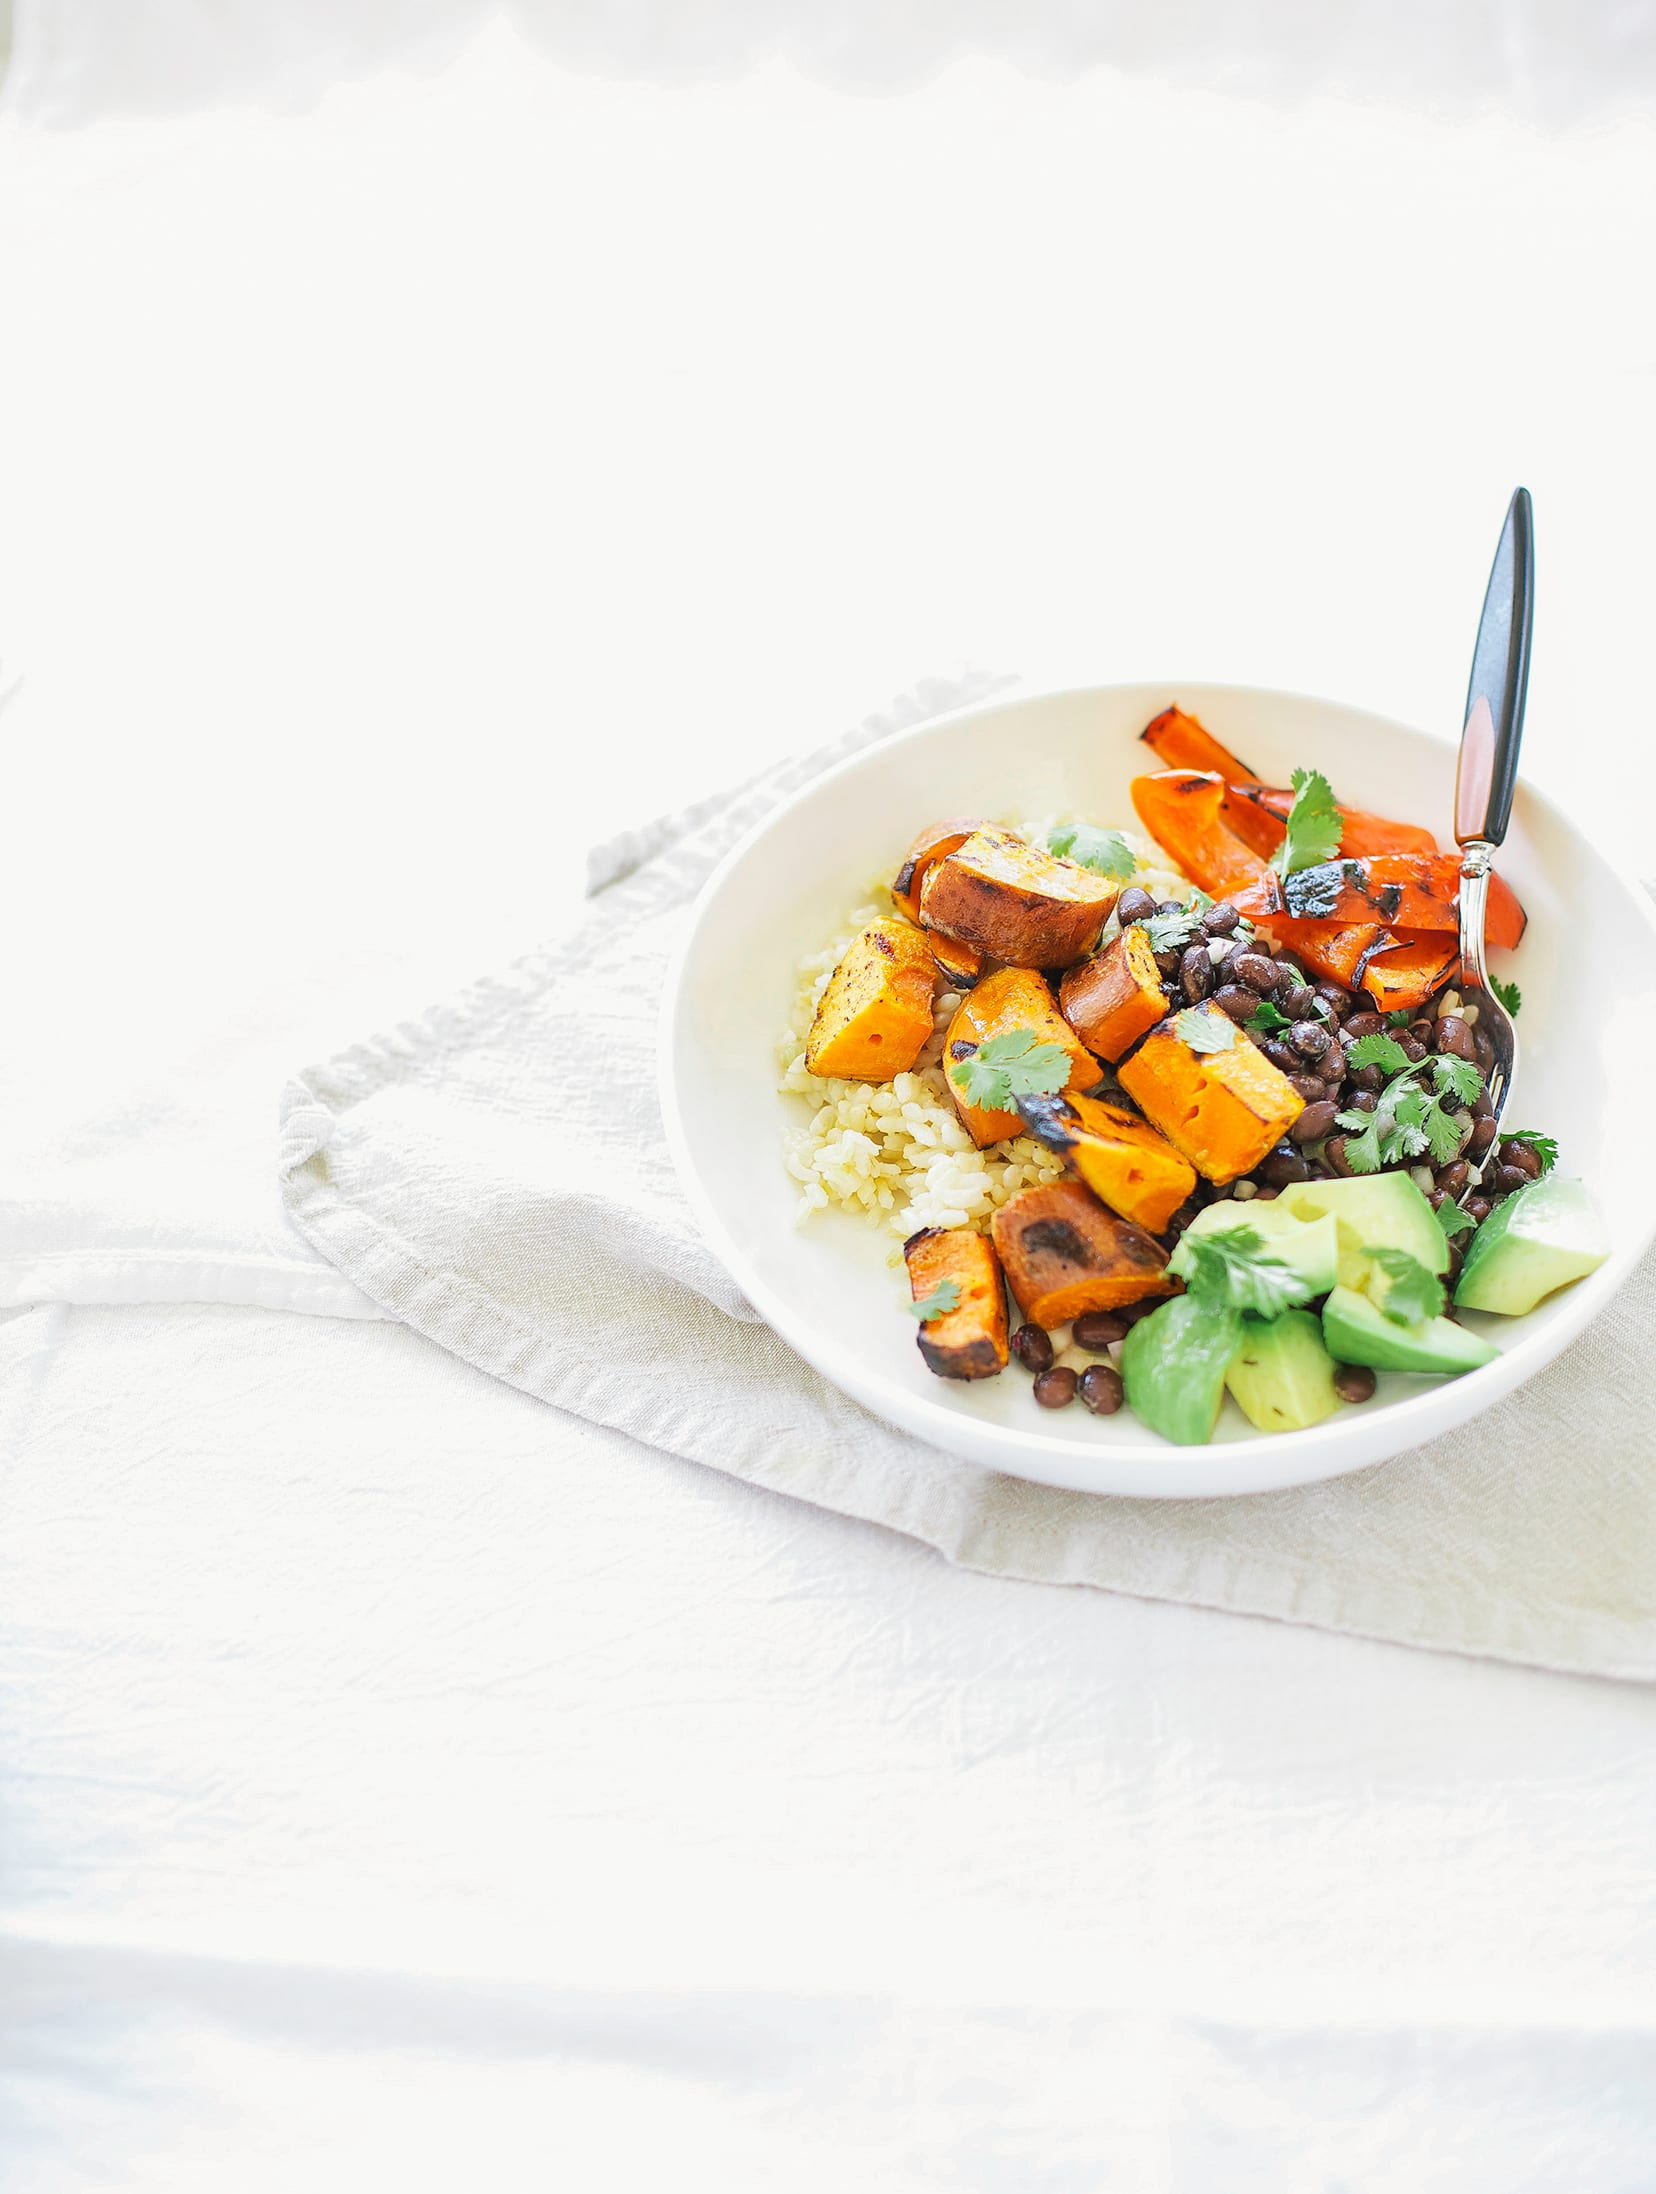 Grilled Sweet Potato Burrito Bowls with Cumin Garlic Drizzle - The First Mess